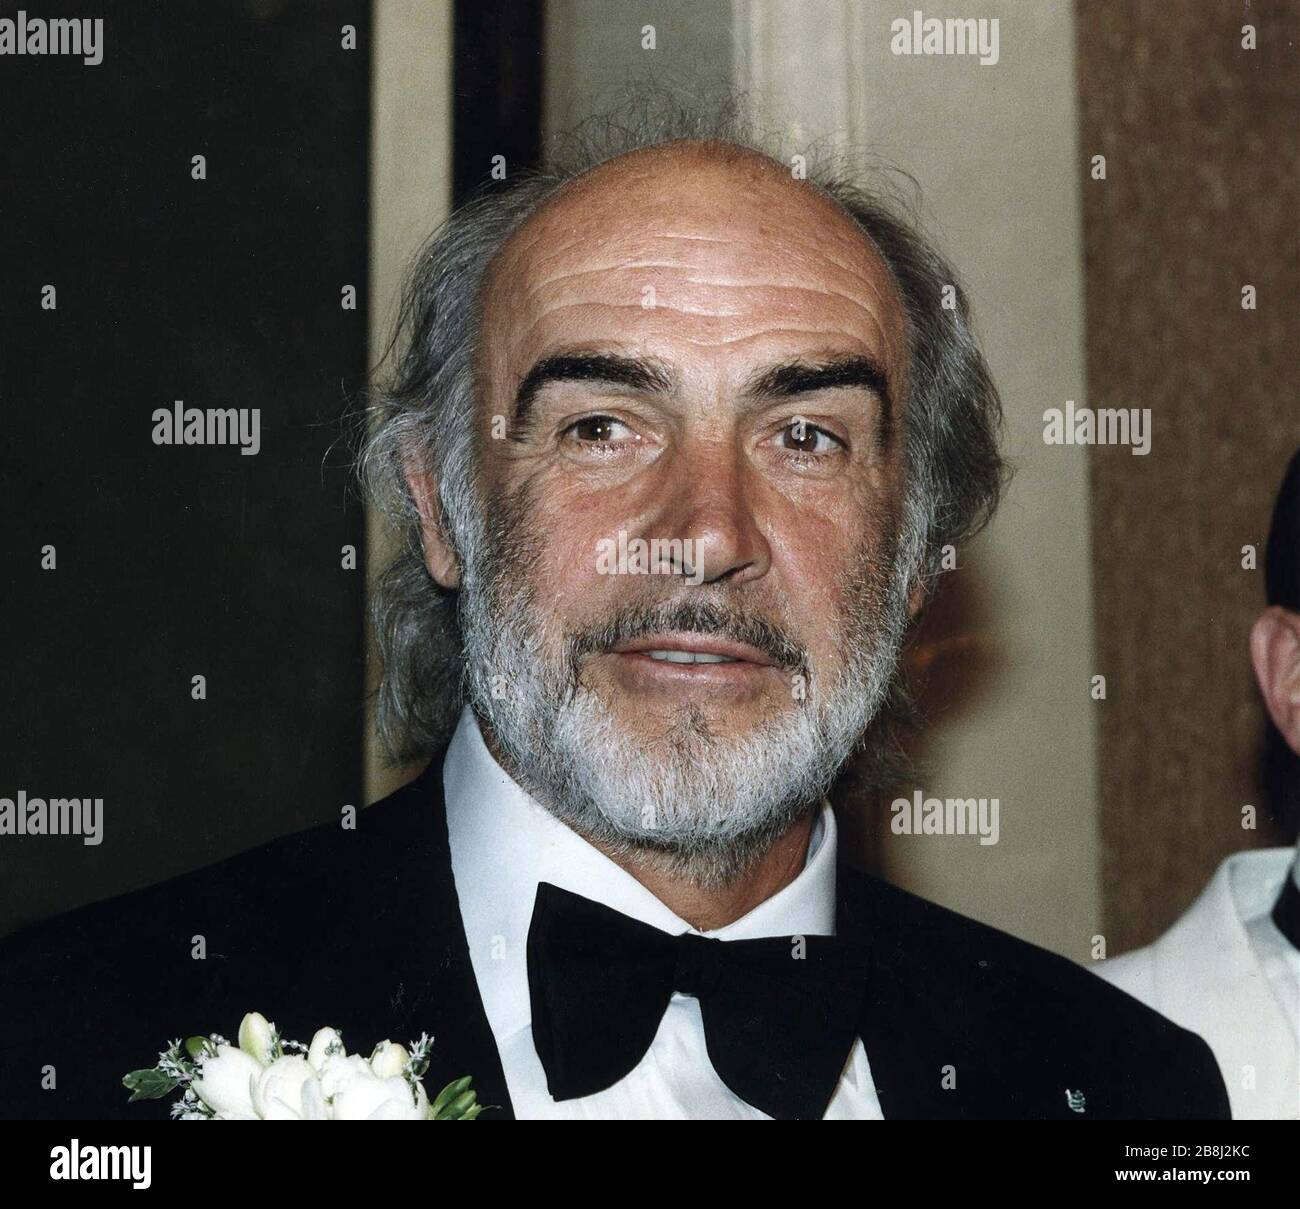 Sean Connery Scottish Film Actor Fotos E Imagenes De Stock Alamy